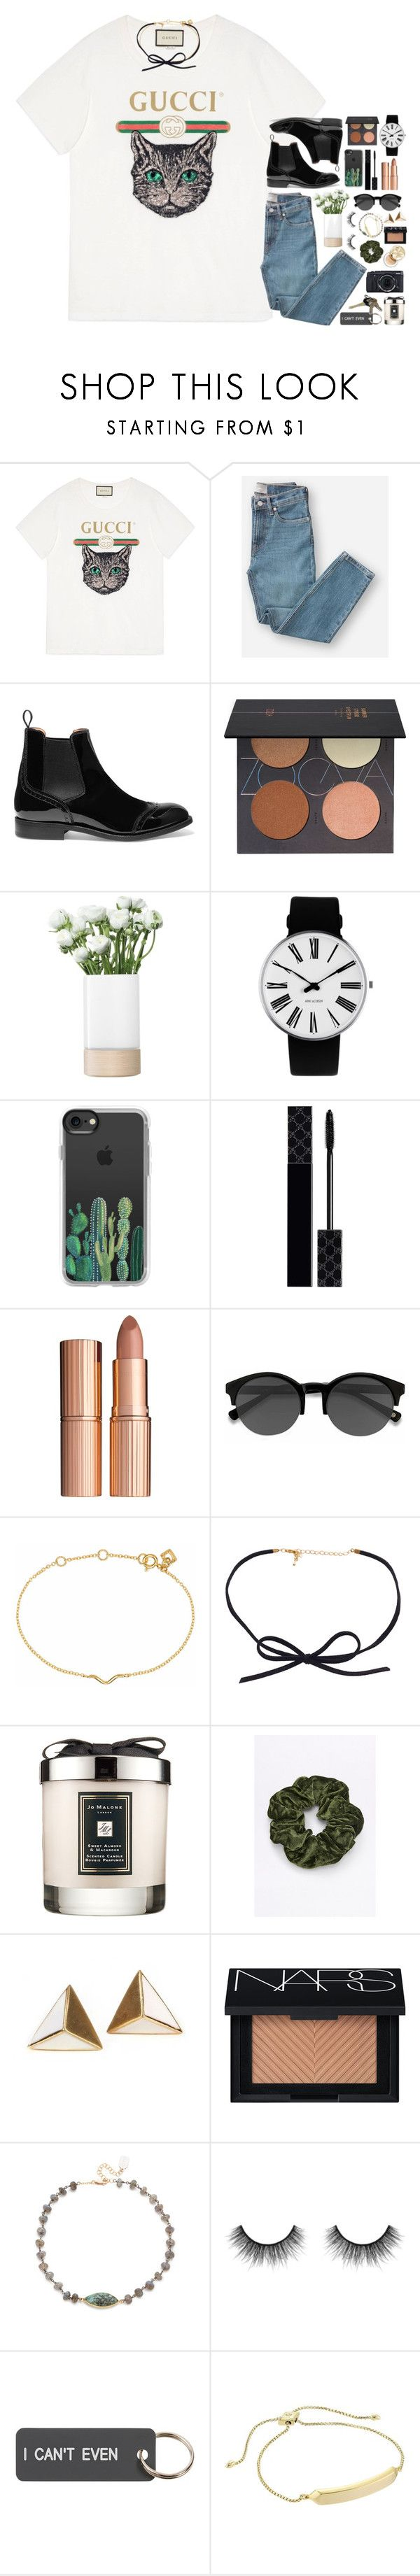 """""""now you're just somebody that I used to know"""" by sdyerrtx ❤ liked on Polyvore featuring Gucci, Everlane, Church's, ZOEVA, LSA International, Rosendahl, Casetify, Charlotte Tilbury, EyeBuyDirect.com and Maya Magal"""